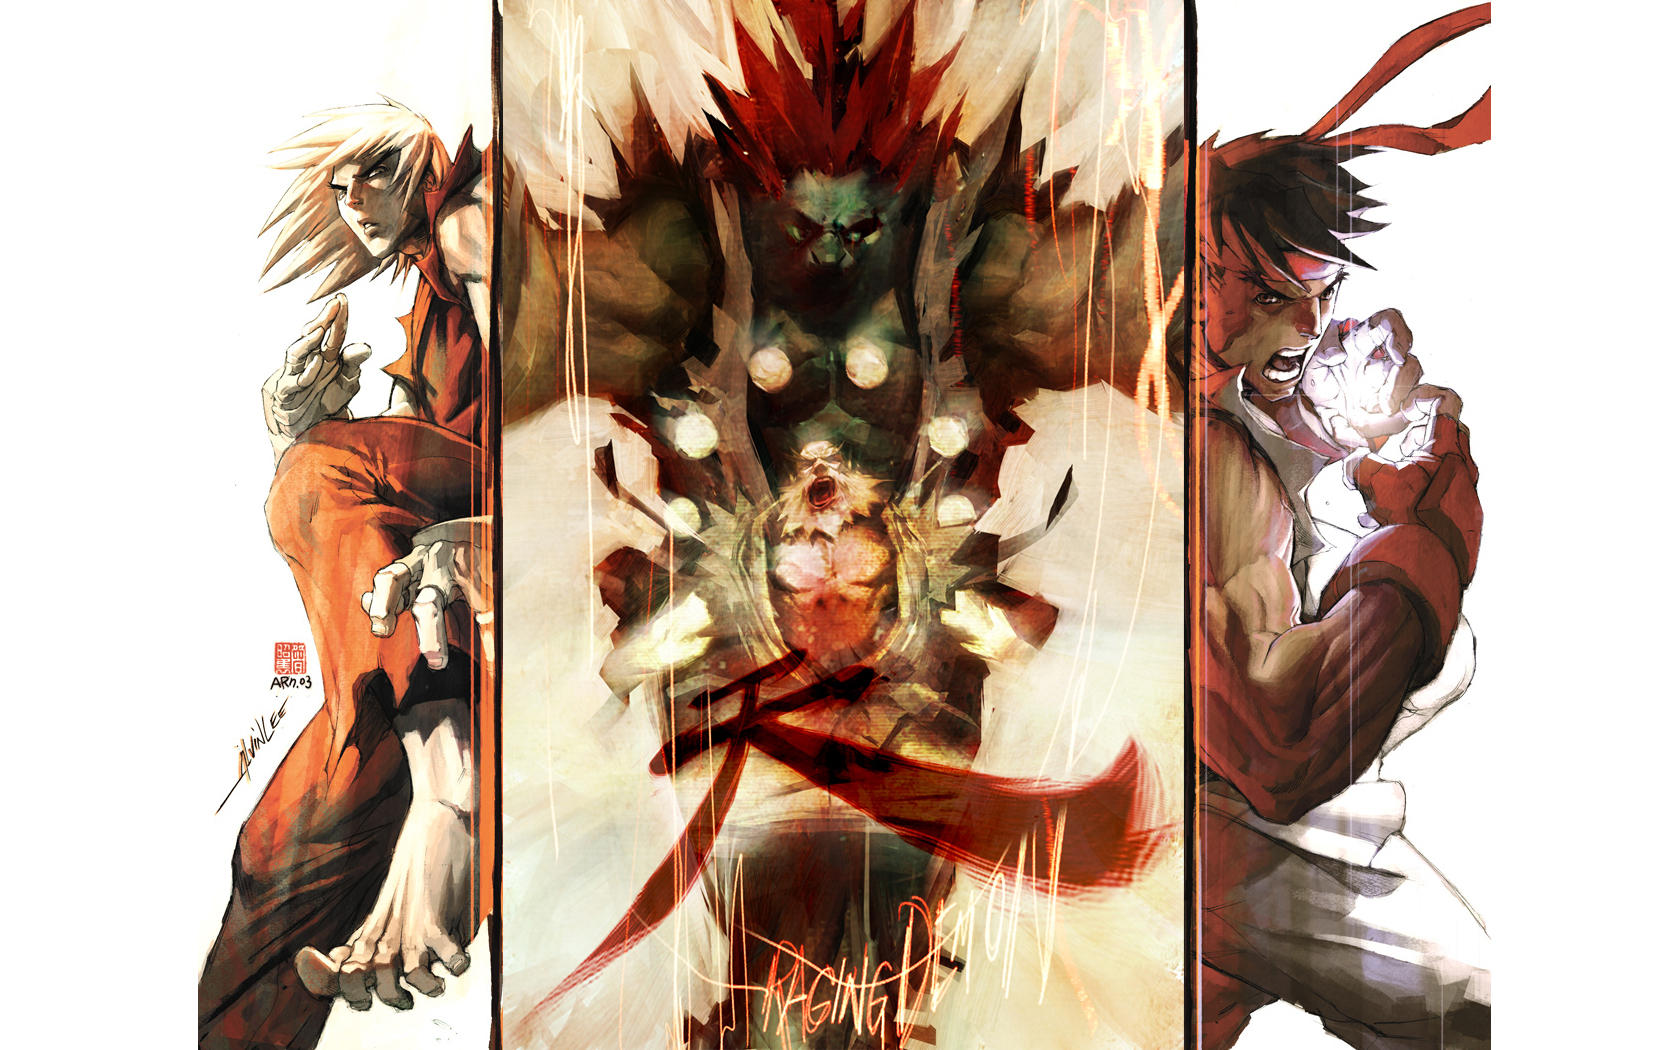 street fighter wallpaper and background image | 1680x1050 | id:75710